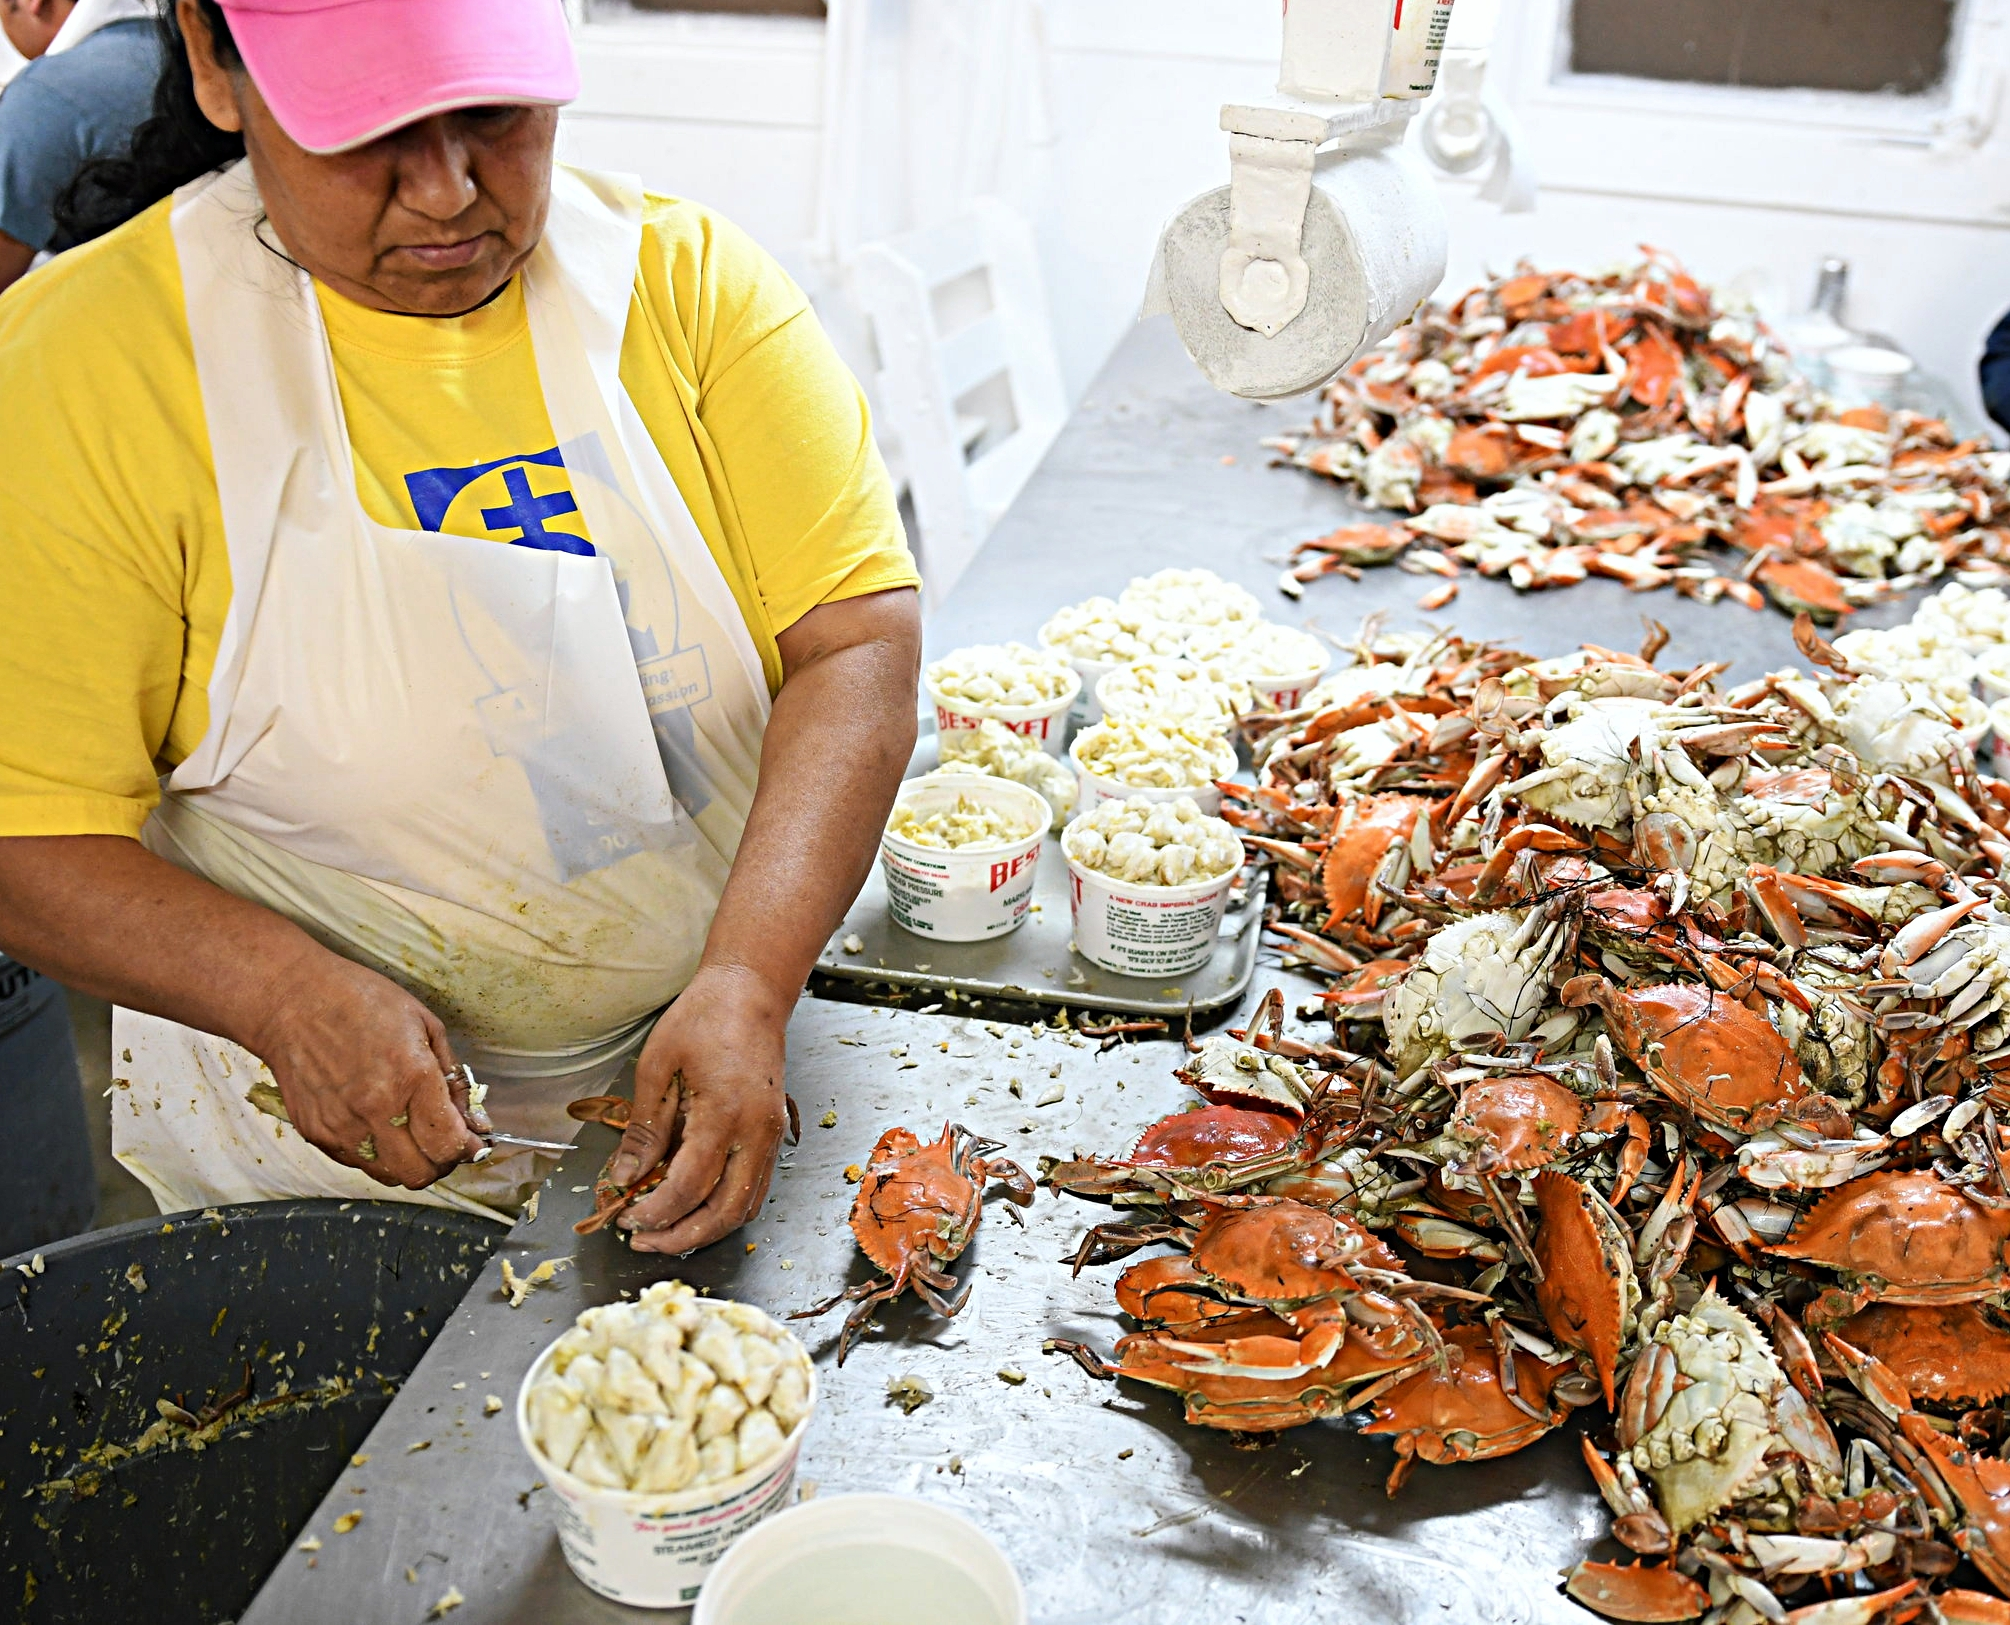 Workers pick crab at W.T. Ruark in Fishing Creek.